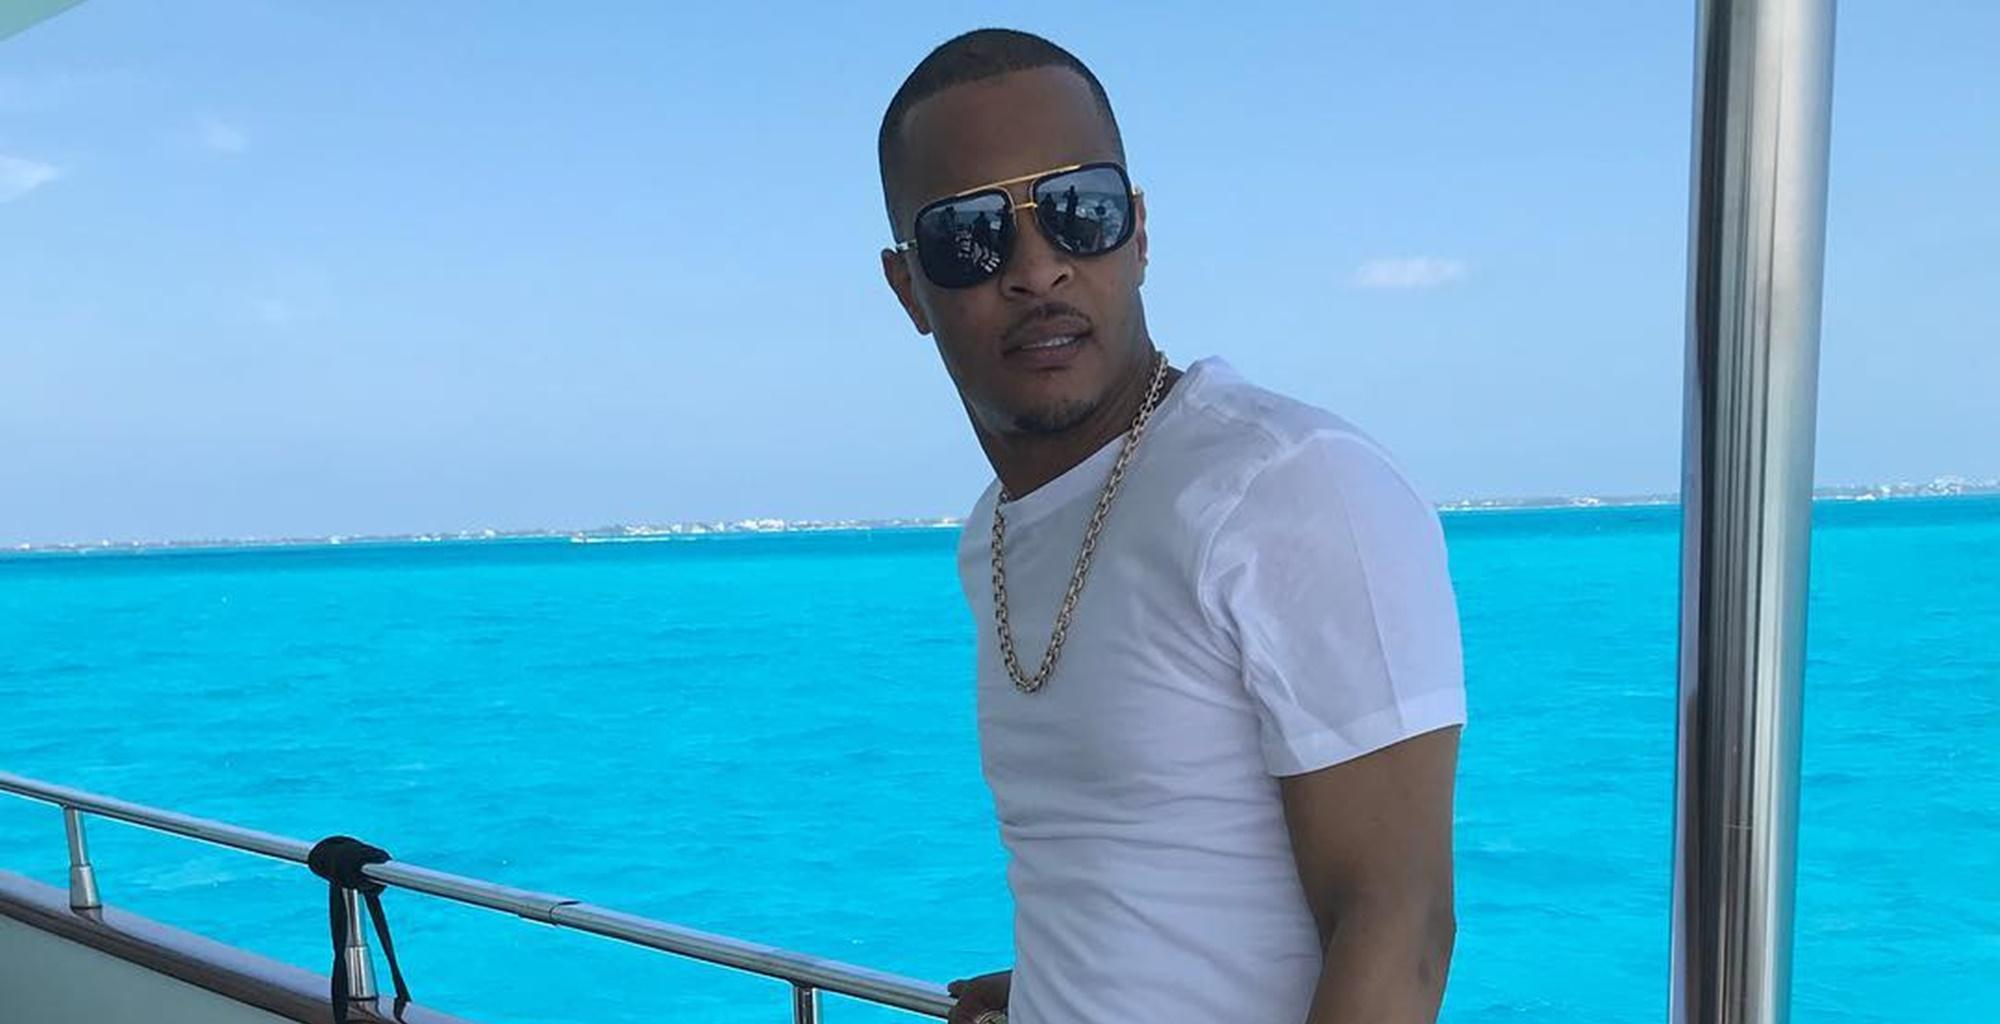 Tiny Harris And T.I. Enjoy A Baecation While Celebrating Their 9th Anniversary - See The Video